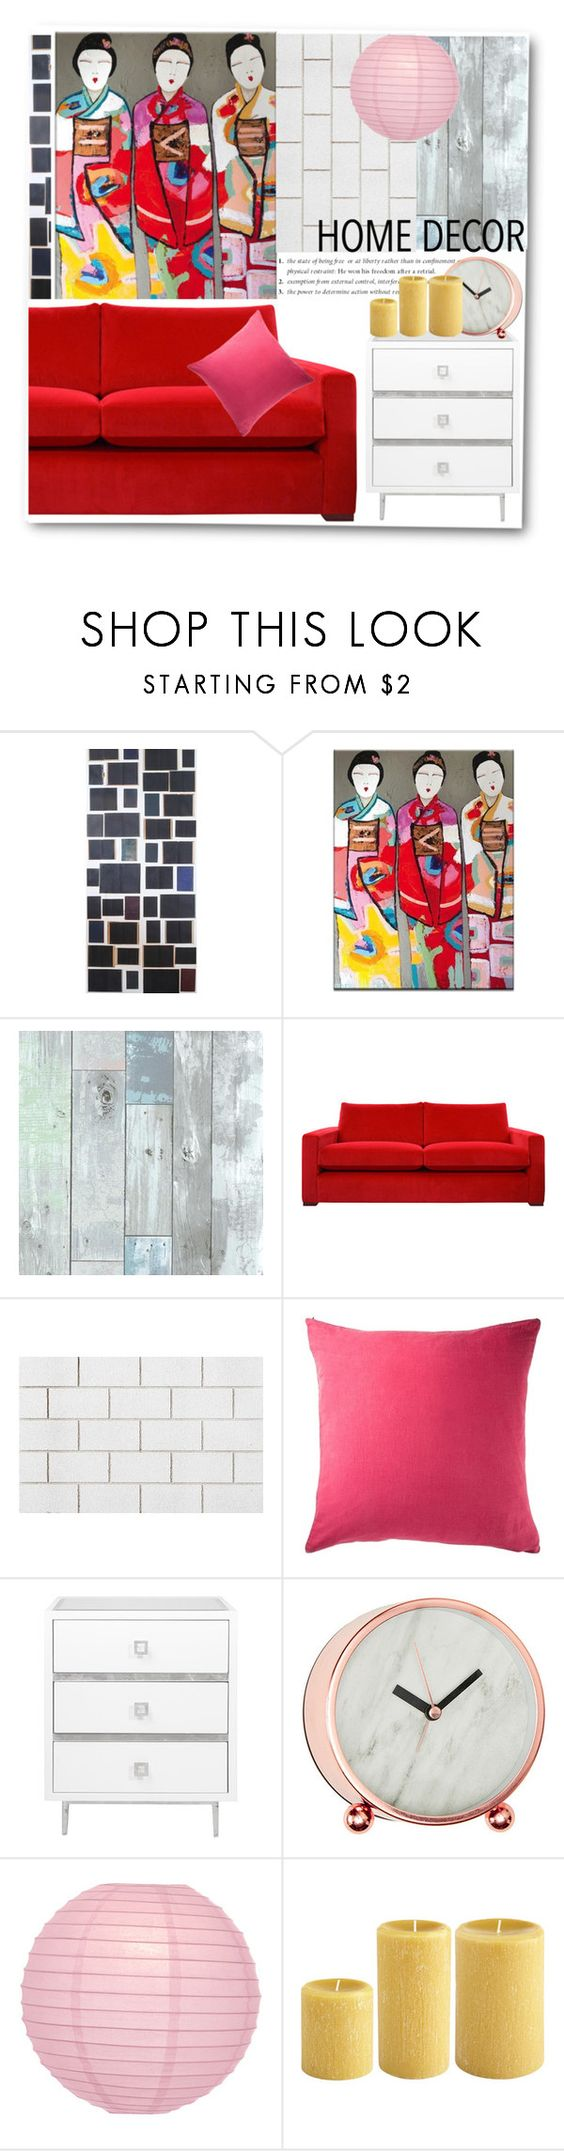 """Geisha print"" by gul07 ❤ liked on Polyvore featuring interior, interiors, interior design, home, home decor, interior decorating, Eka, CB2 and Cultural Intrigue"